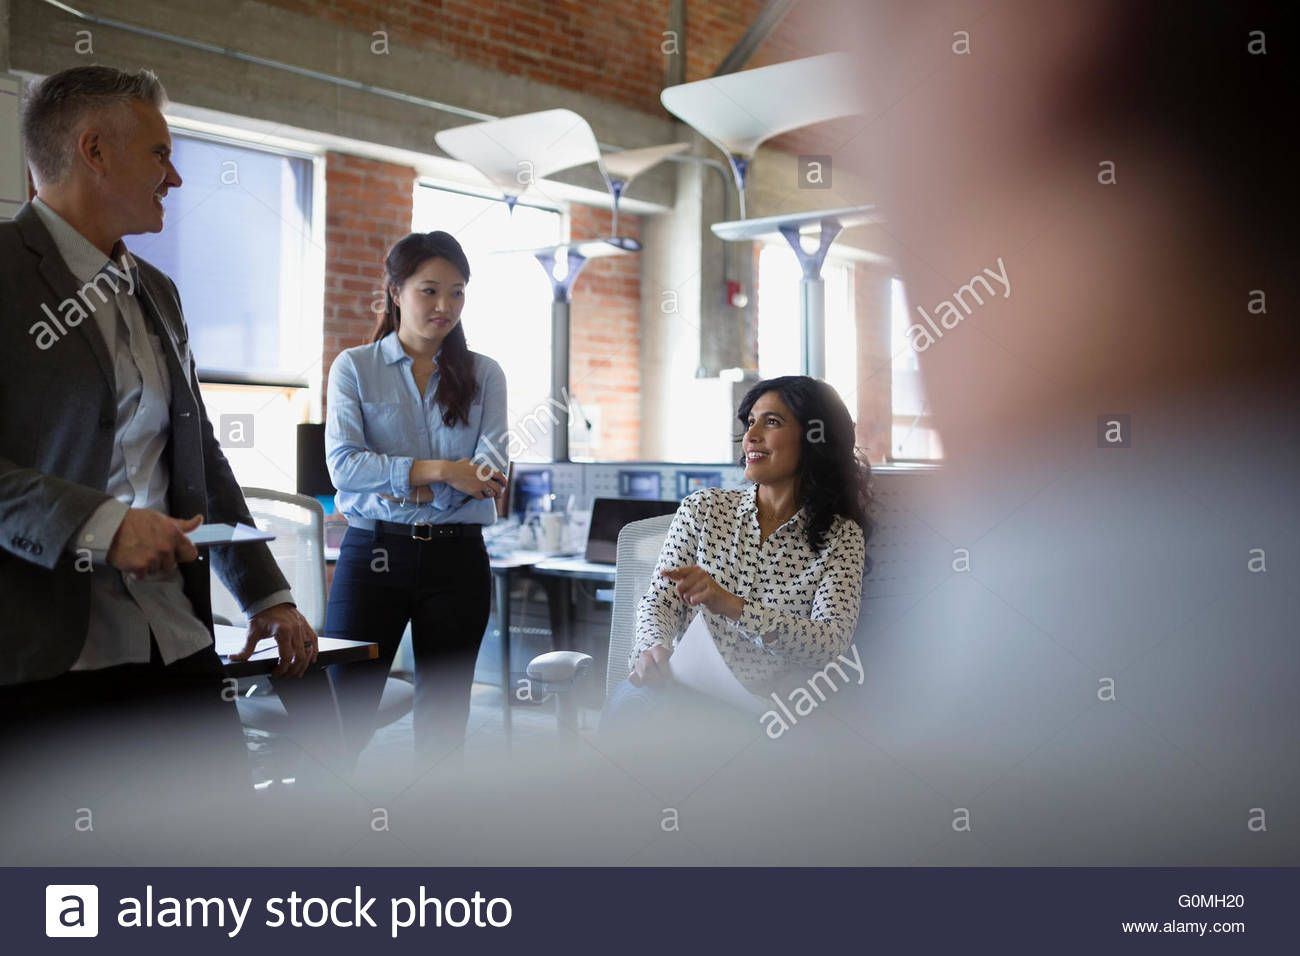 Business people talking in meeting in office - Stock Image